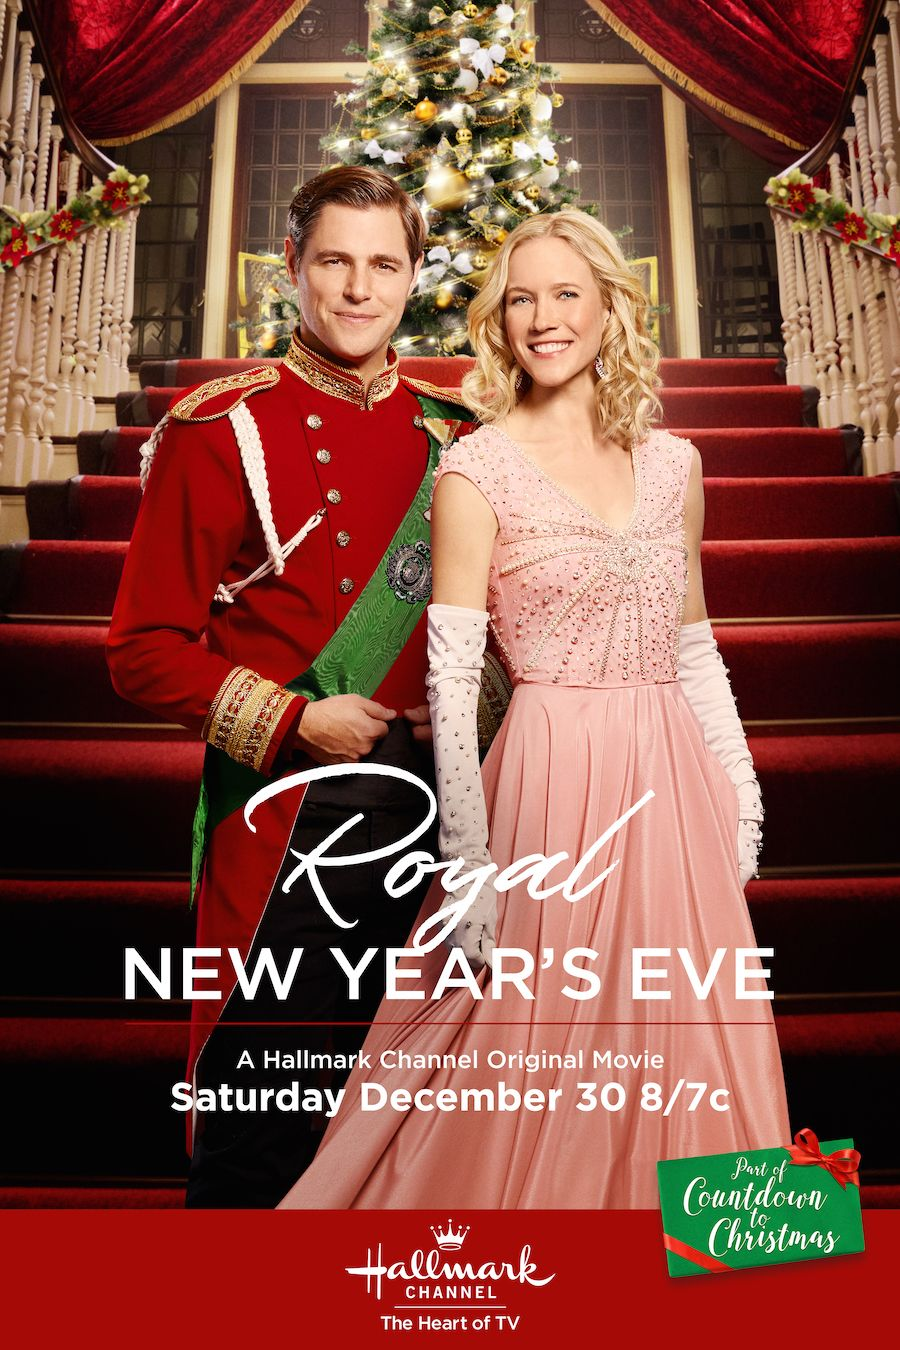 Royal New Year's Eve Sam Page and Jessy Schram celebrate